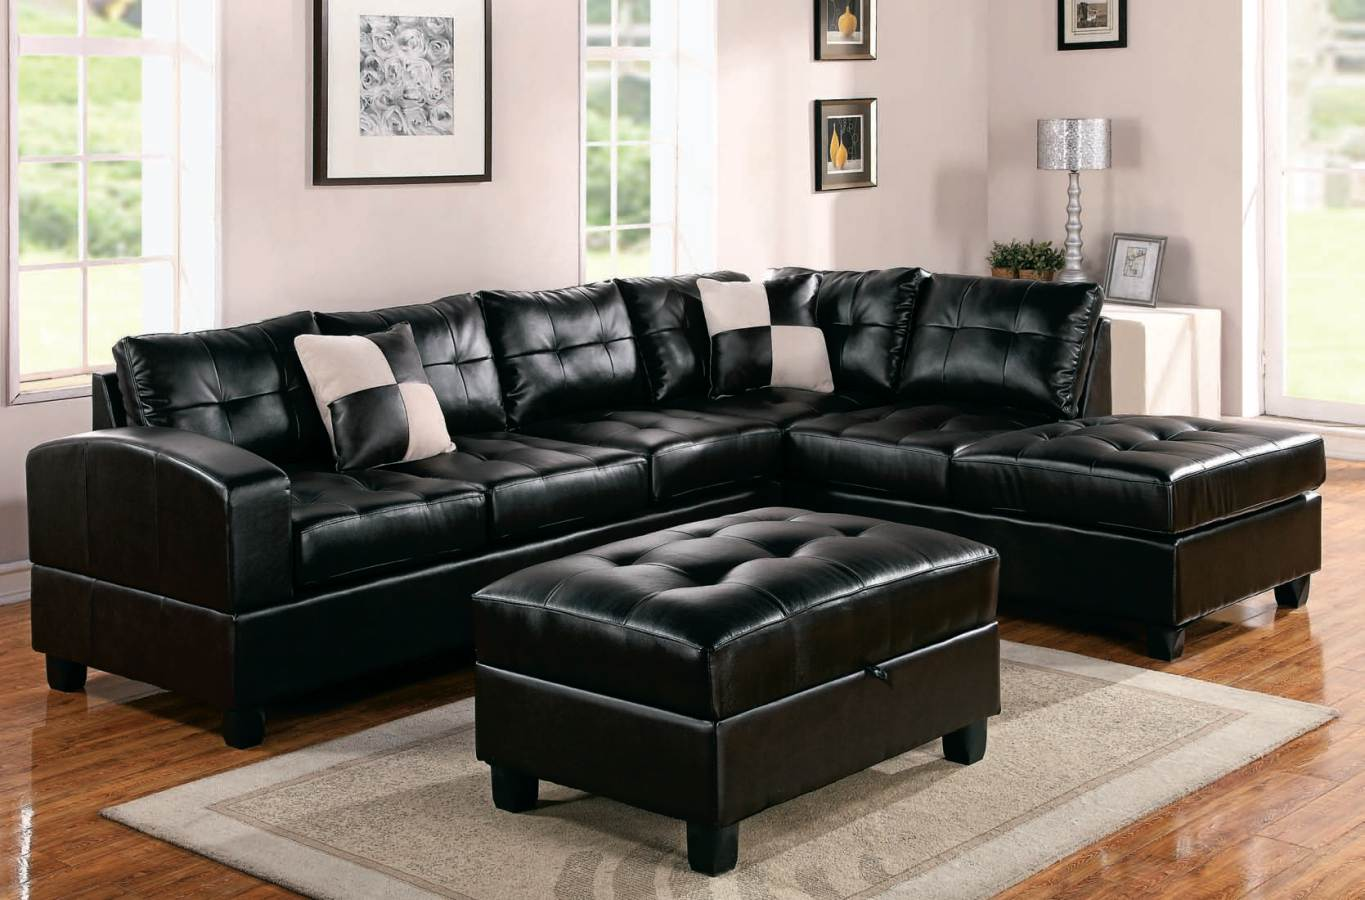 High Class Black Leather Coated Sectional Sofa With Black Leather Ottoman  Smooth And Soft Grey Area